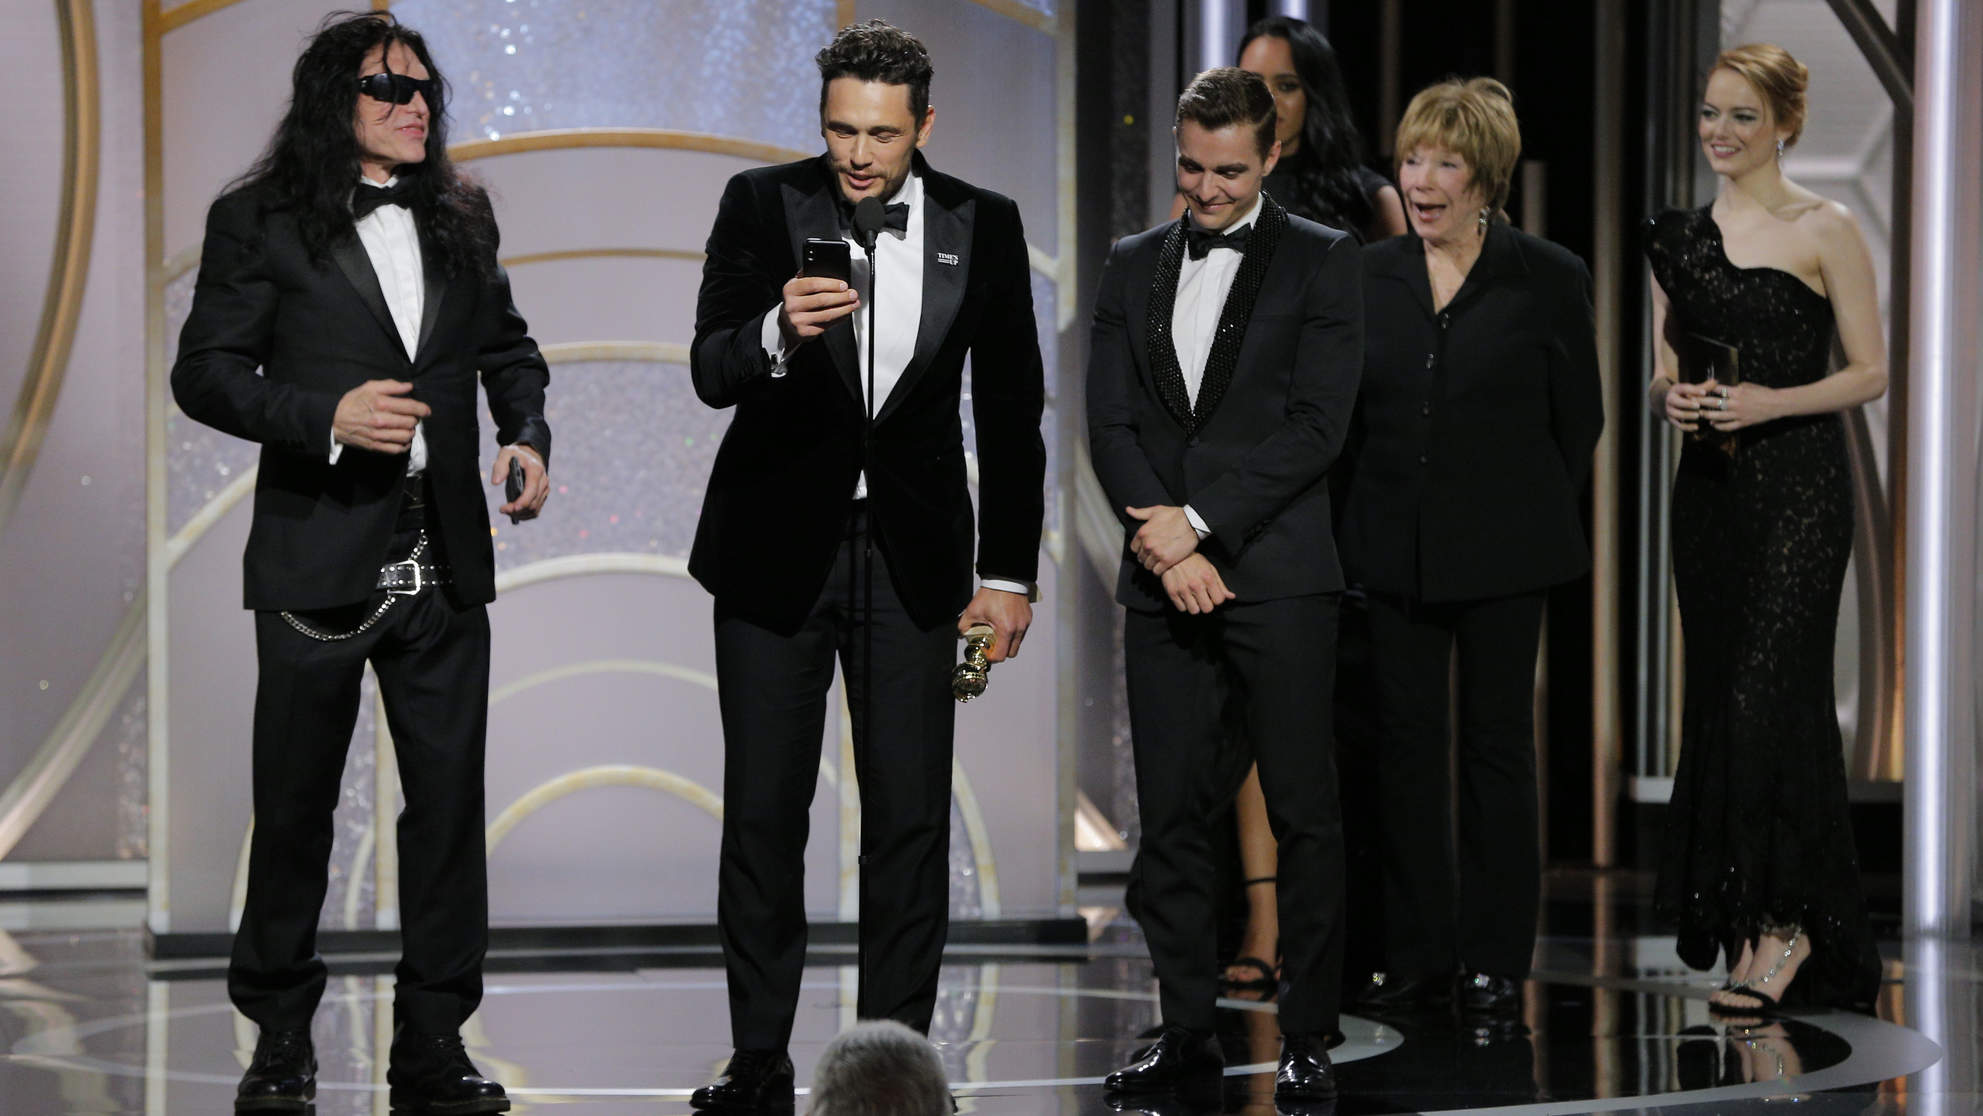 Why People Are Calling Out James Franco After the Golden Globes